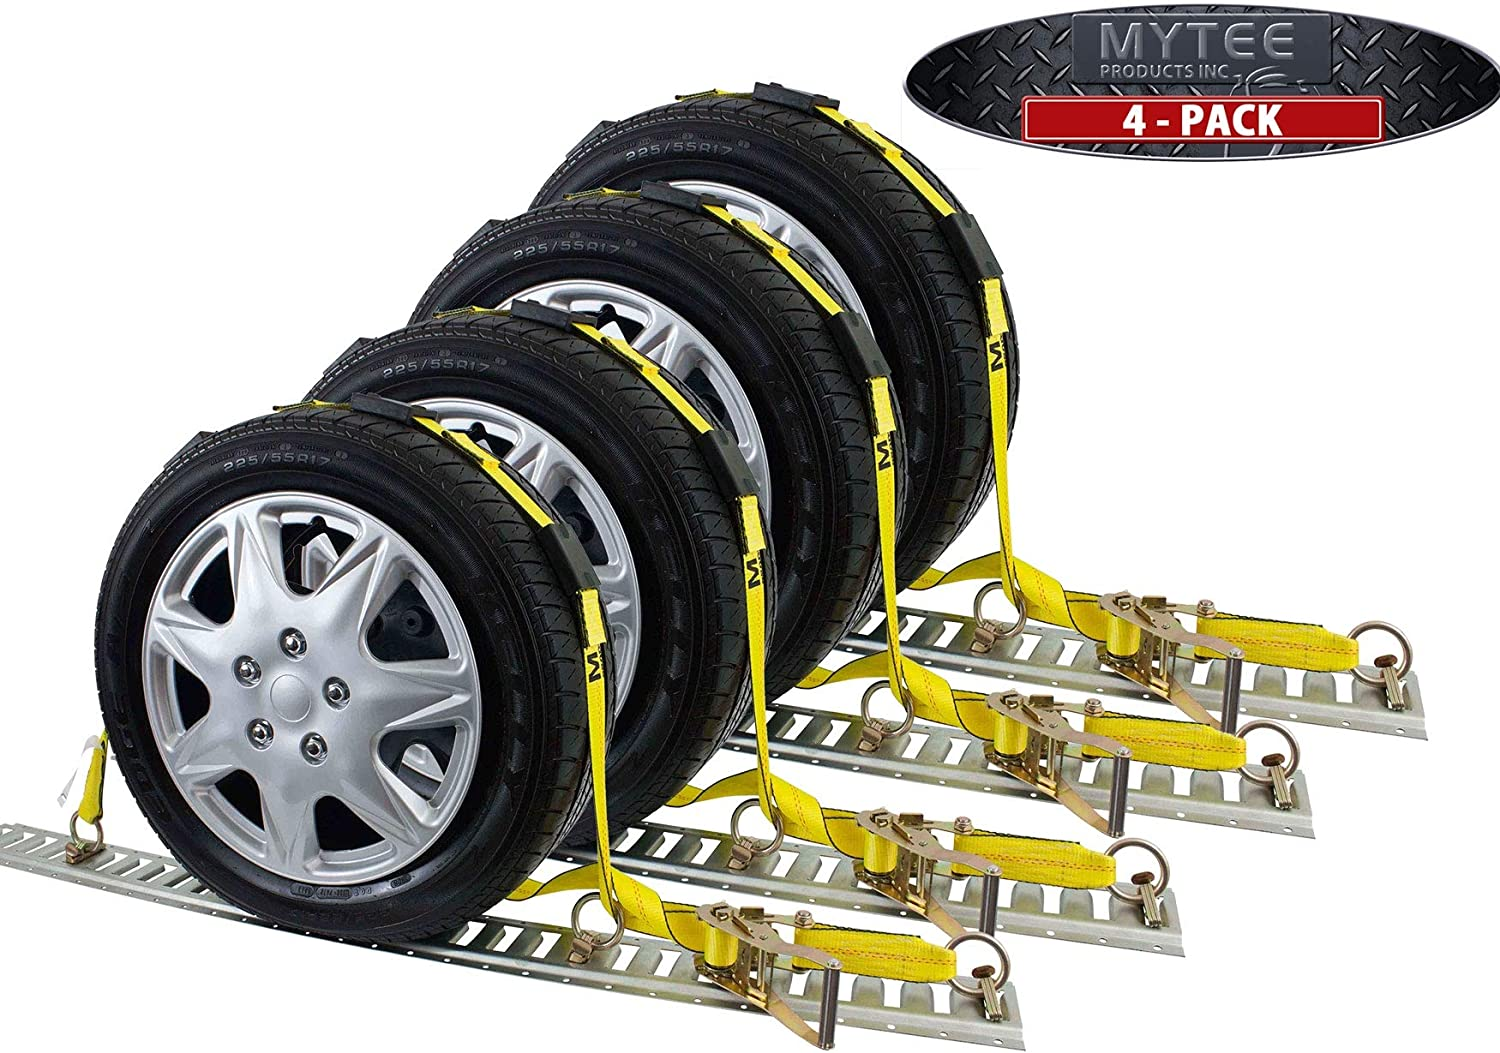 4 Pack Over The Tire Wheel Strap w//E-Track Fittings 2 x 10 Mytee Products